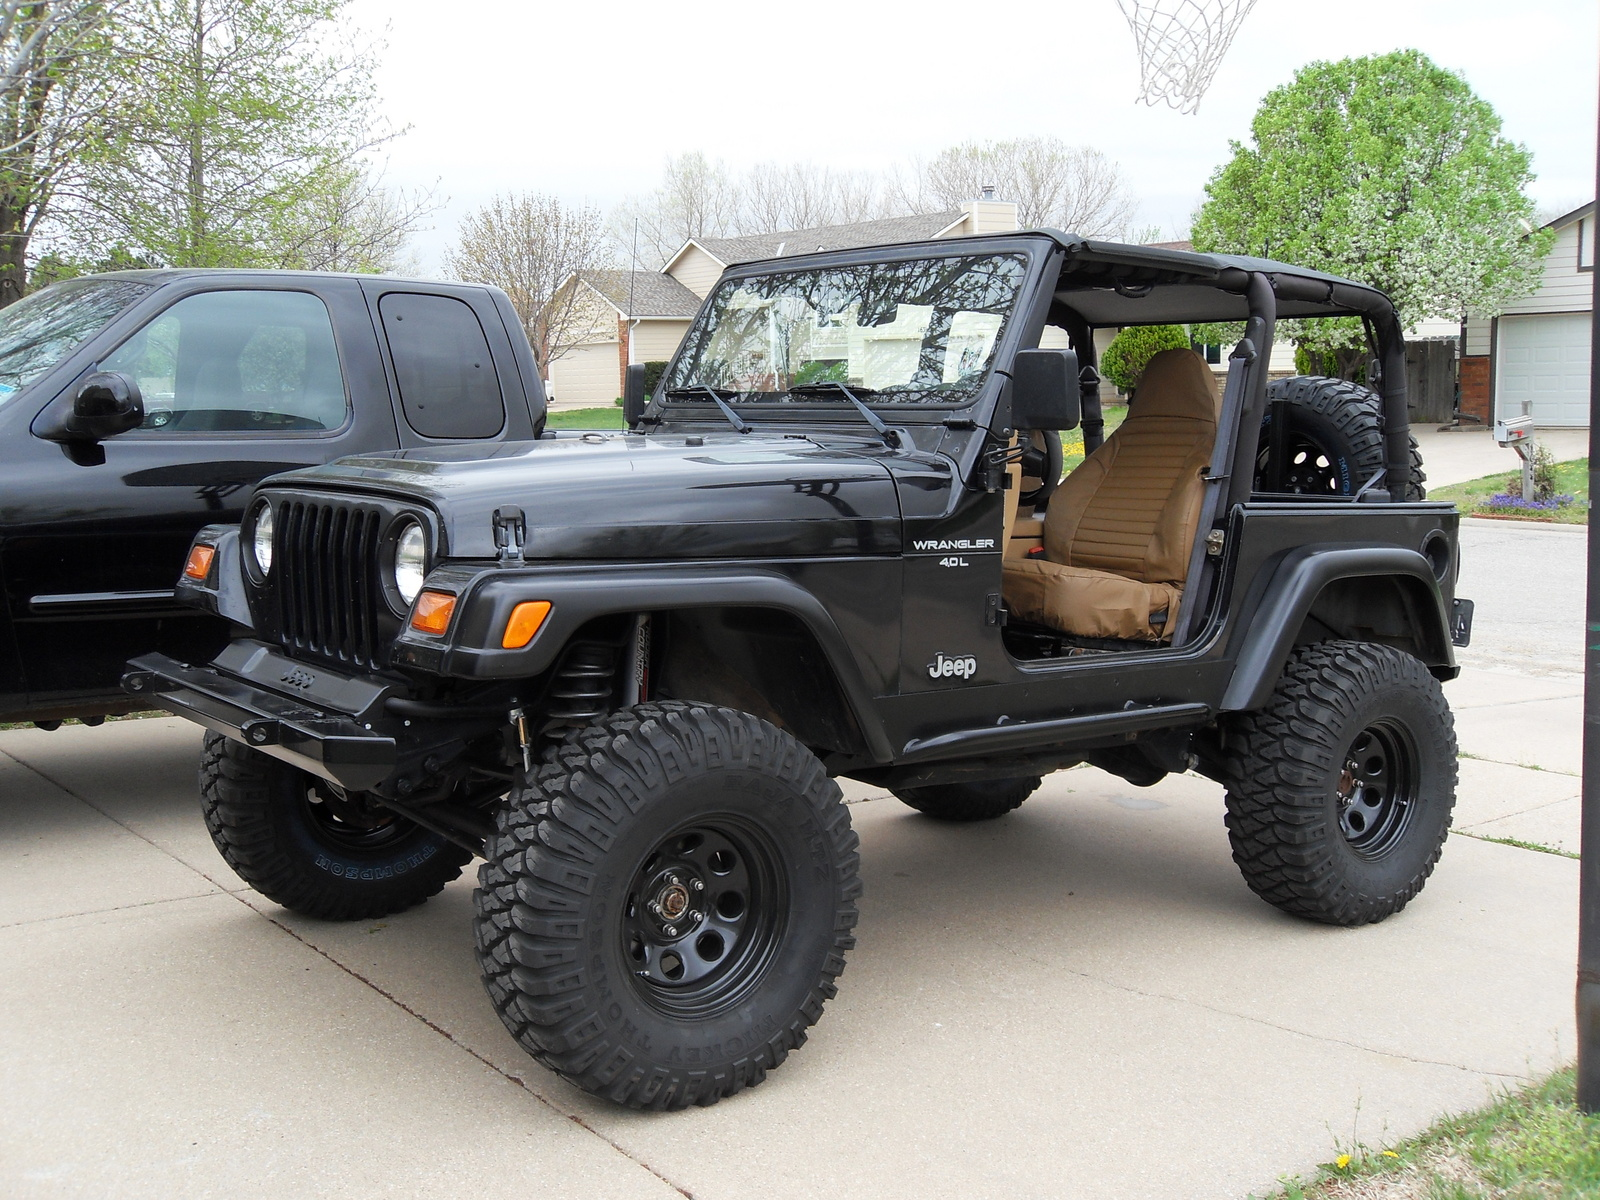 2006 Jeep Commander Lifted 1998 Jeep Wrangler - Pictures - CarGurus